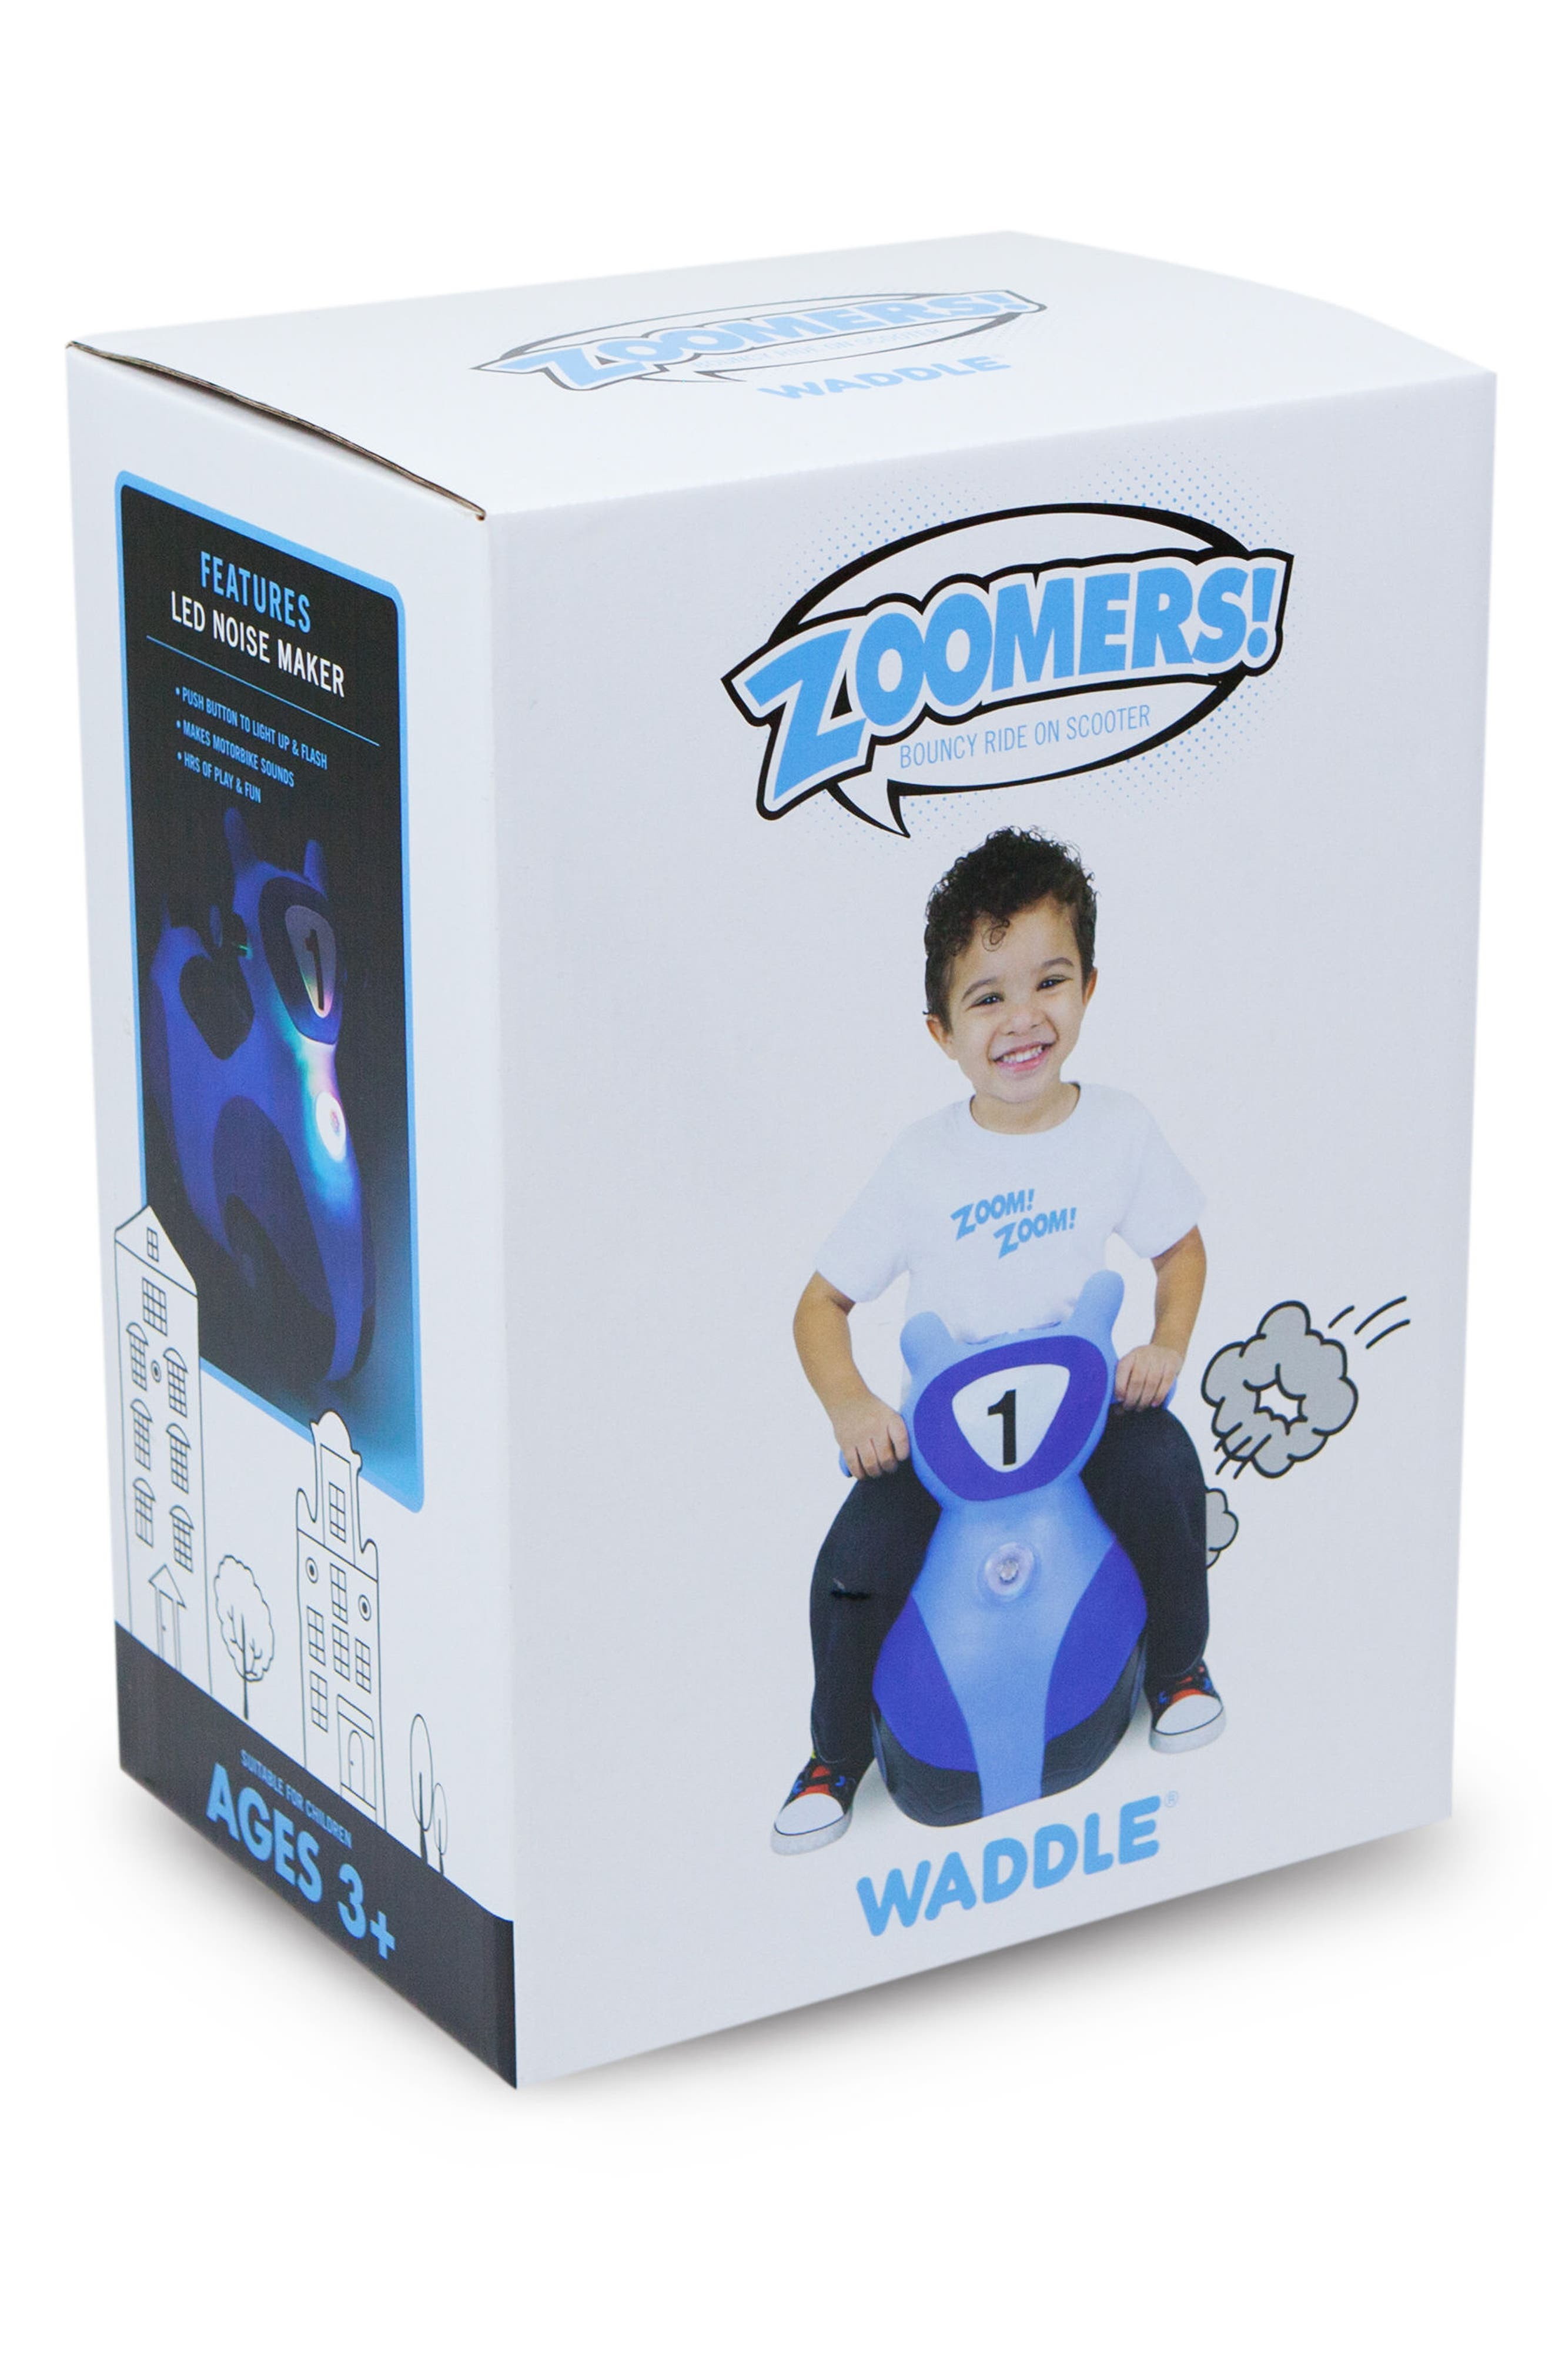 Scooter Bouncy Ride-On Scooter Toy,                             Alternate thumbnail 2, color,                             BLUE